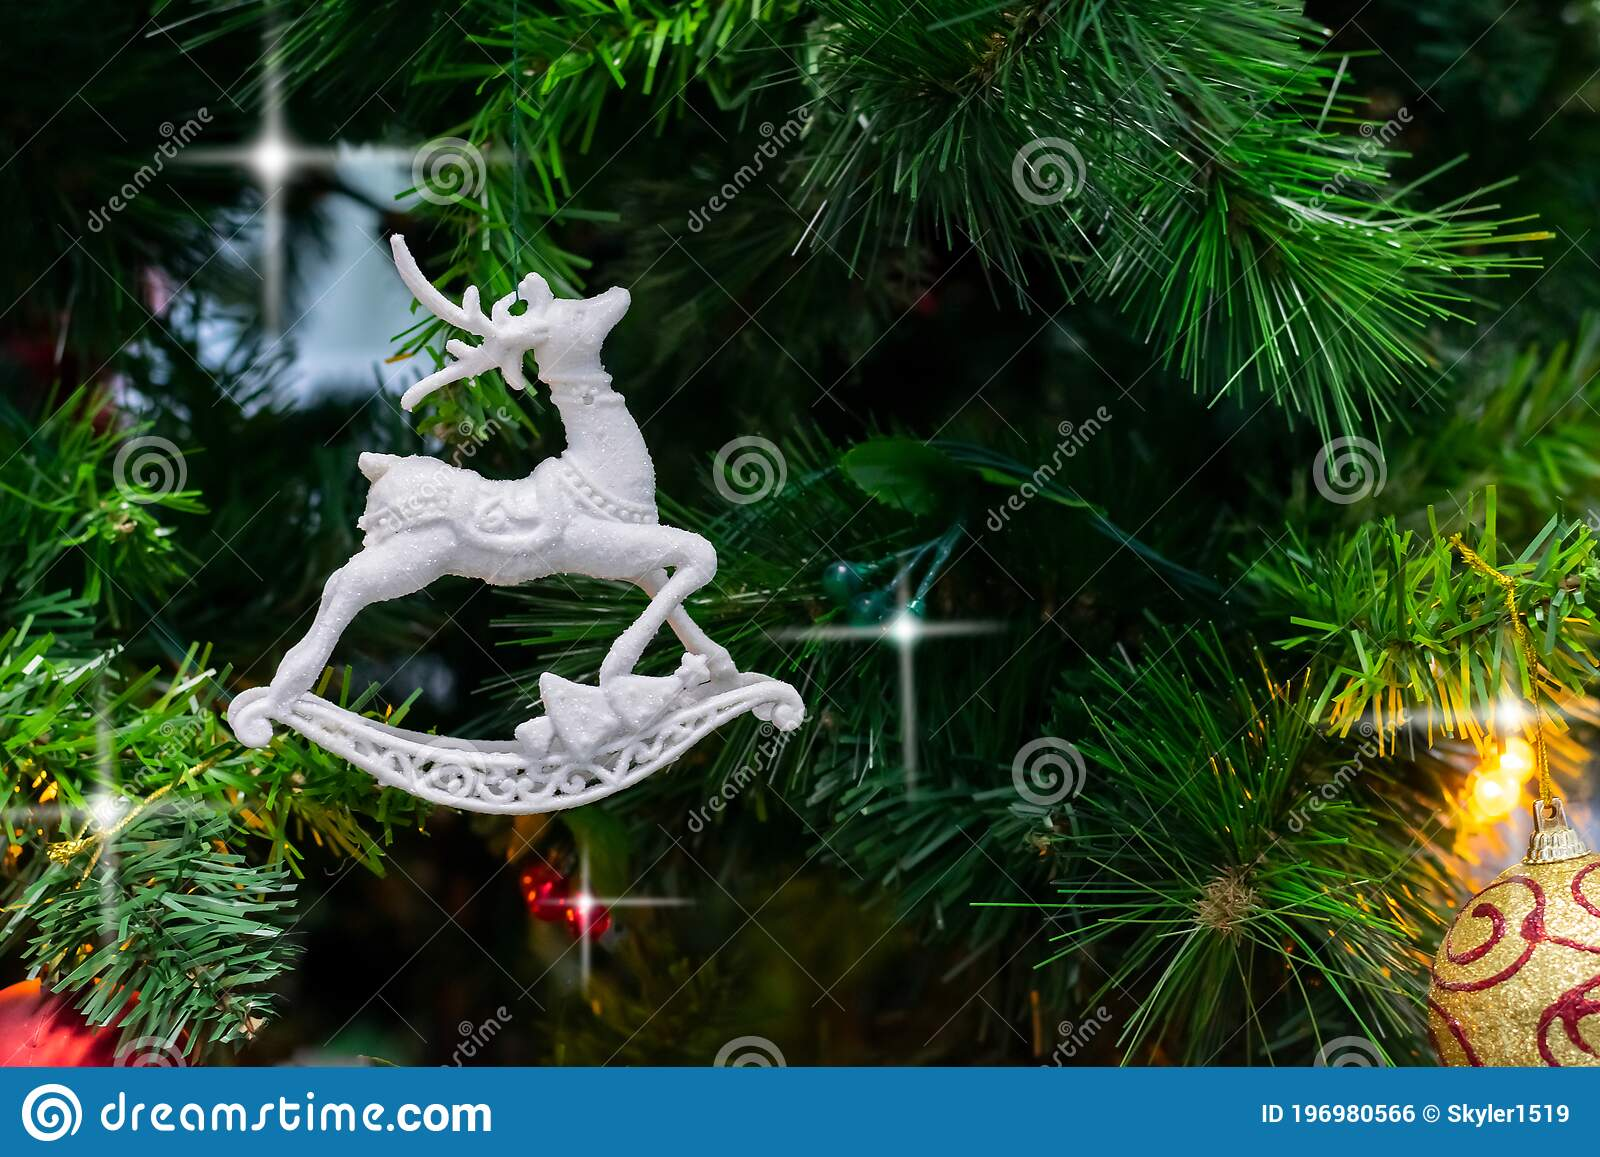 White Toy Deer Garland Ribbons Are Hanging On Branches Of Christmas Tree Stock Photo Image Of Background Nature 196980566